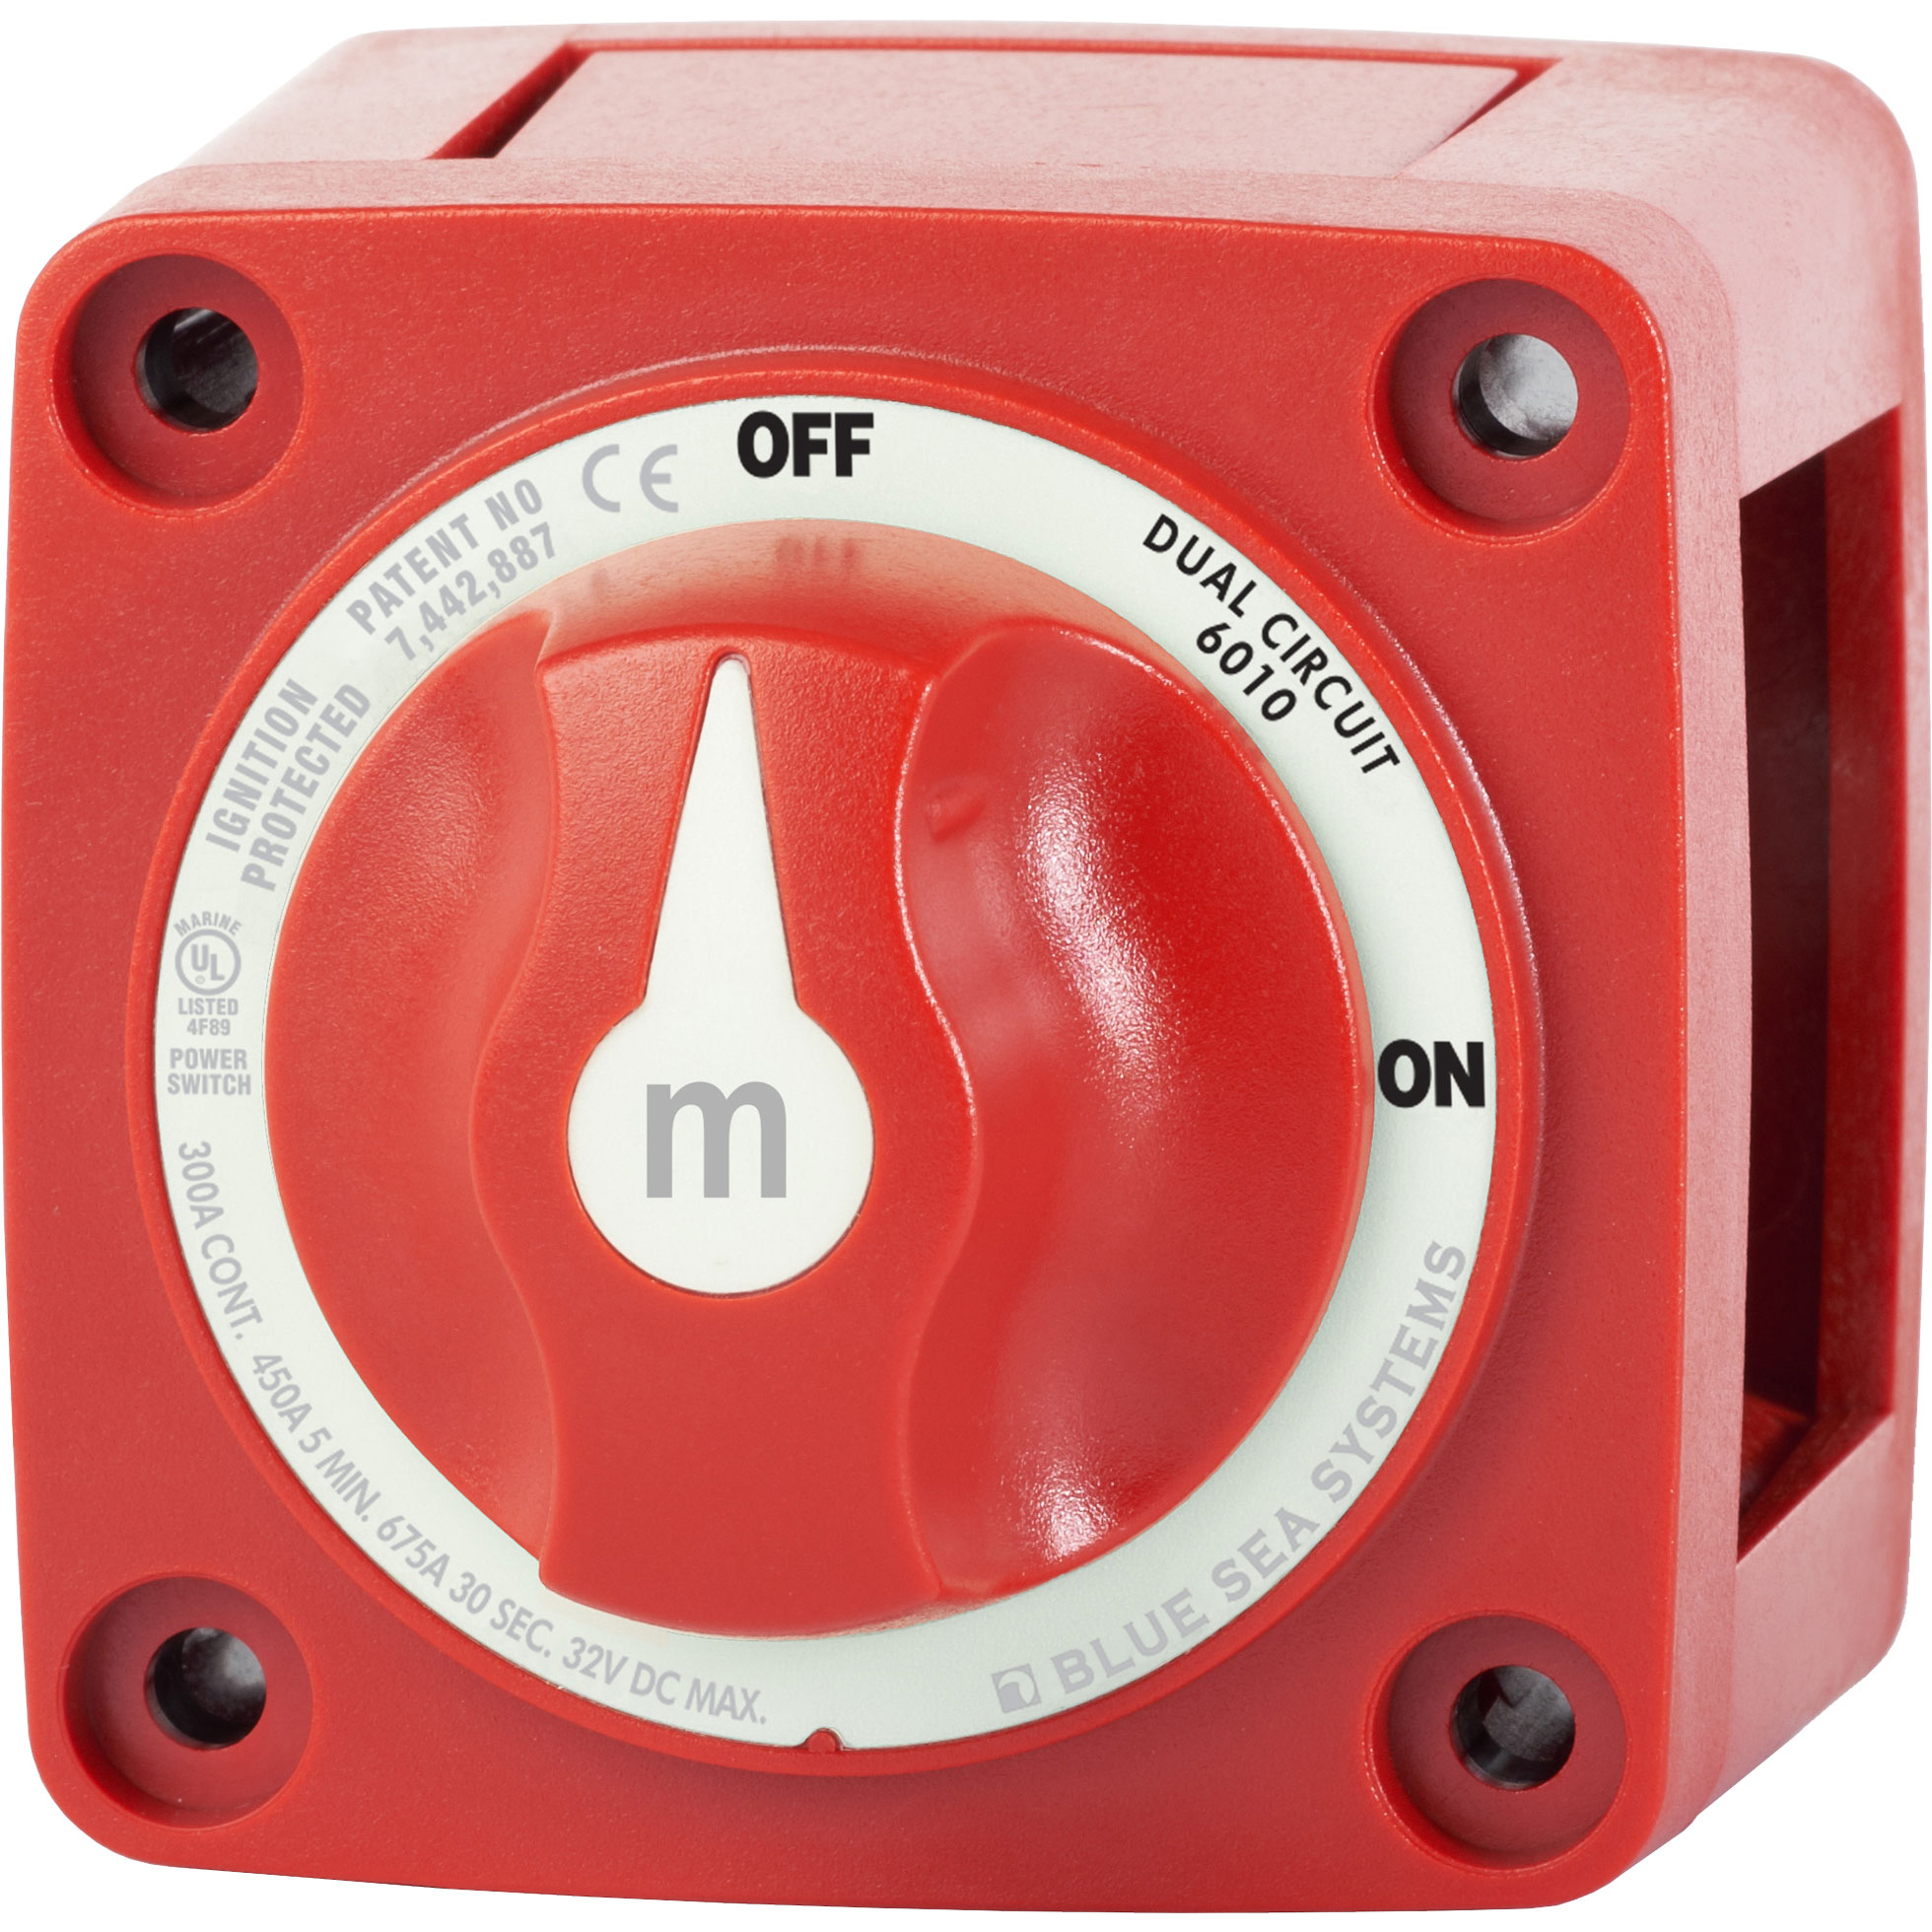 Blue Sea m-Series 6010 Battery Switch, Dual Circuit